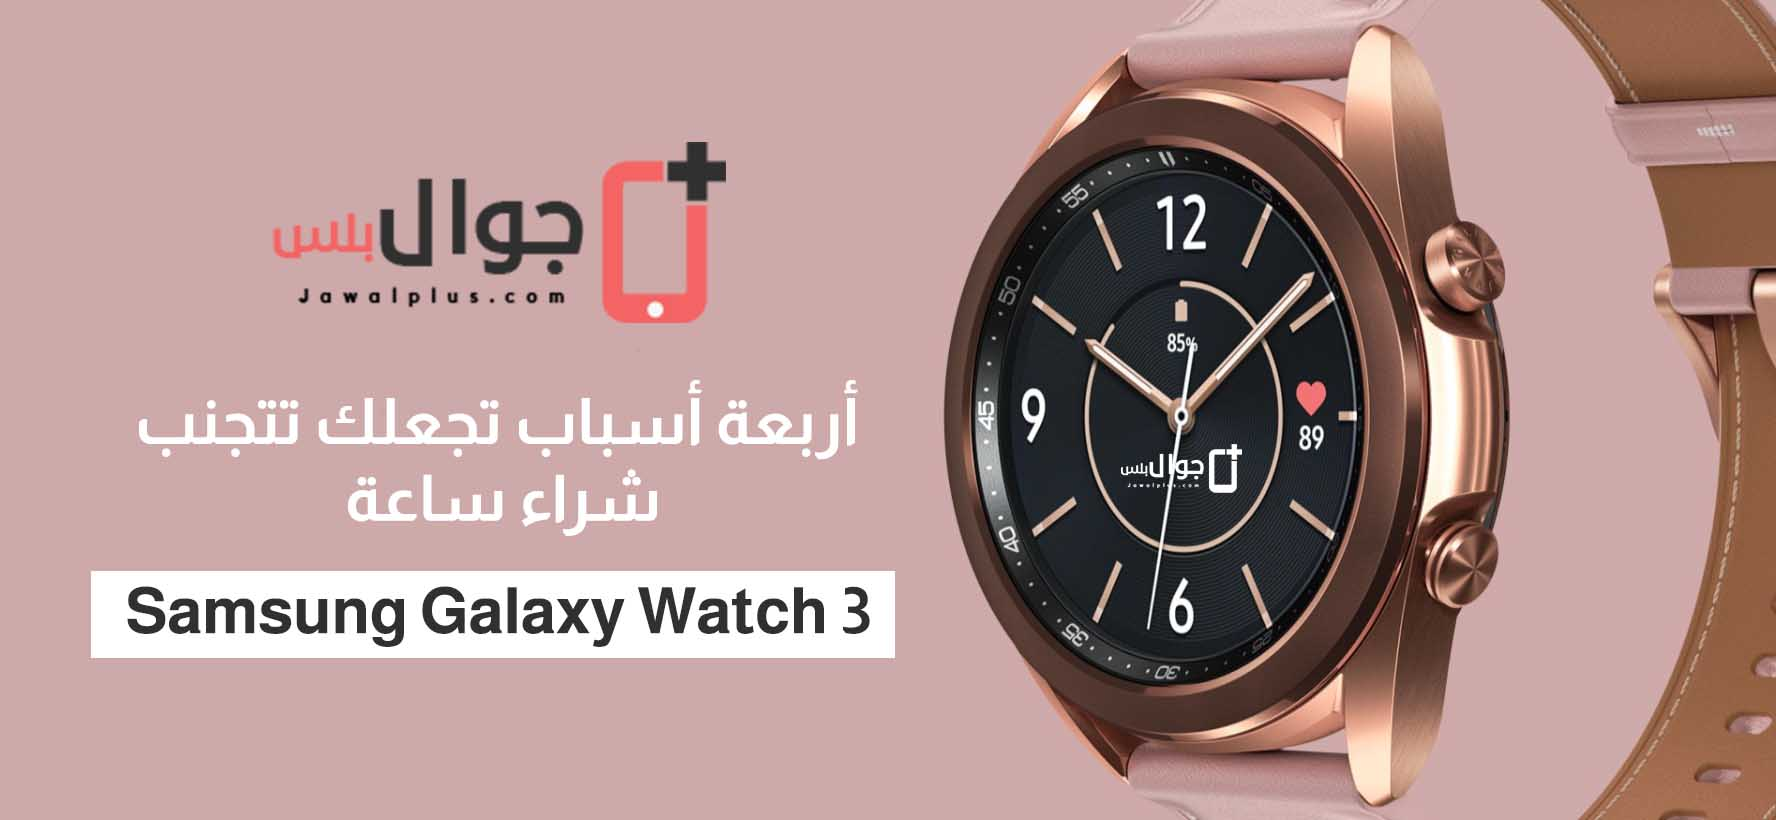 Reasons to not buy Samsung Galaxy Watch3